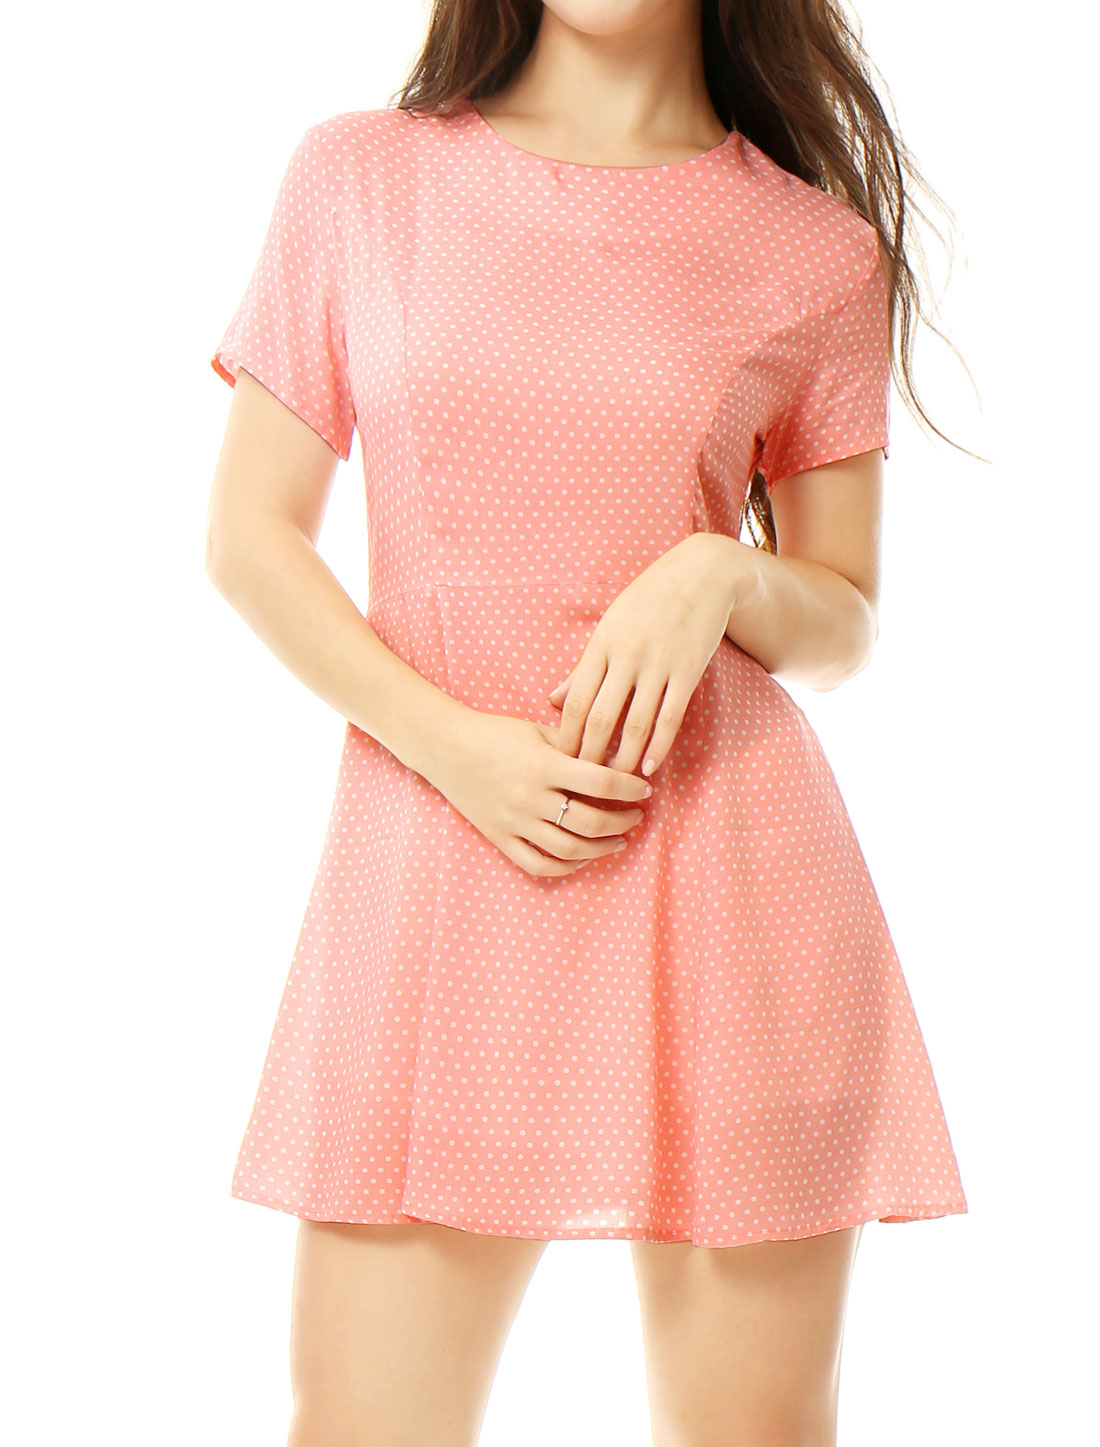 Women Polka Dots Lace Up Back Short Sleeves A Line Dress Pink S